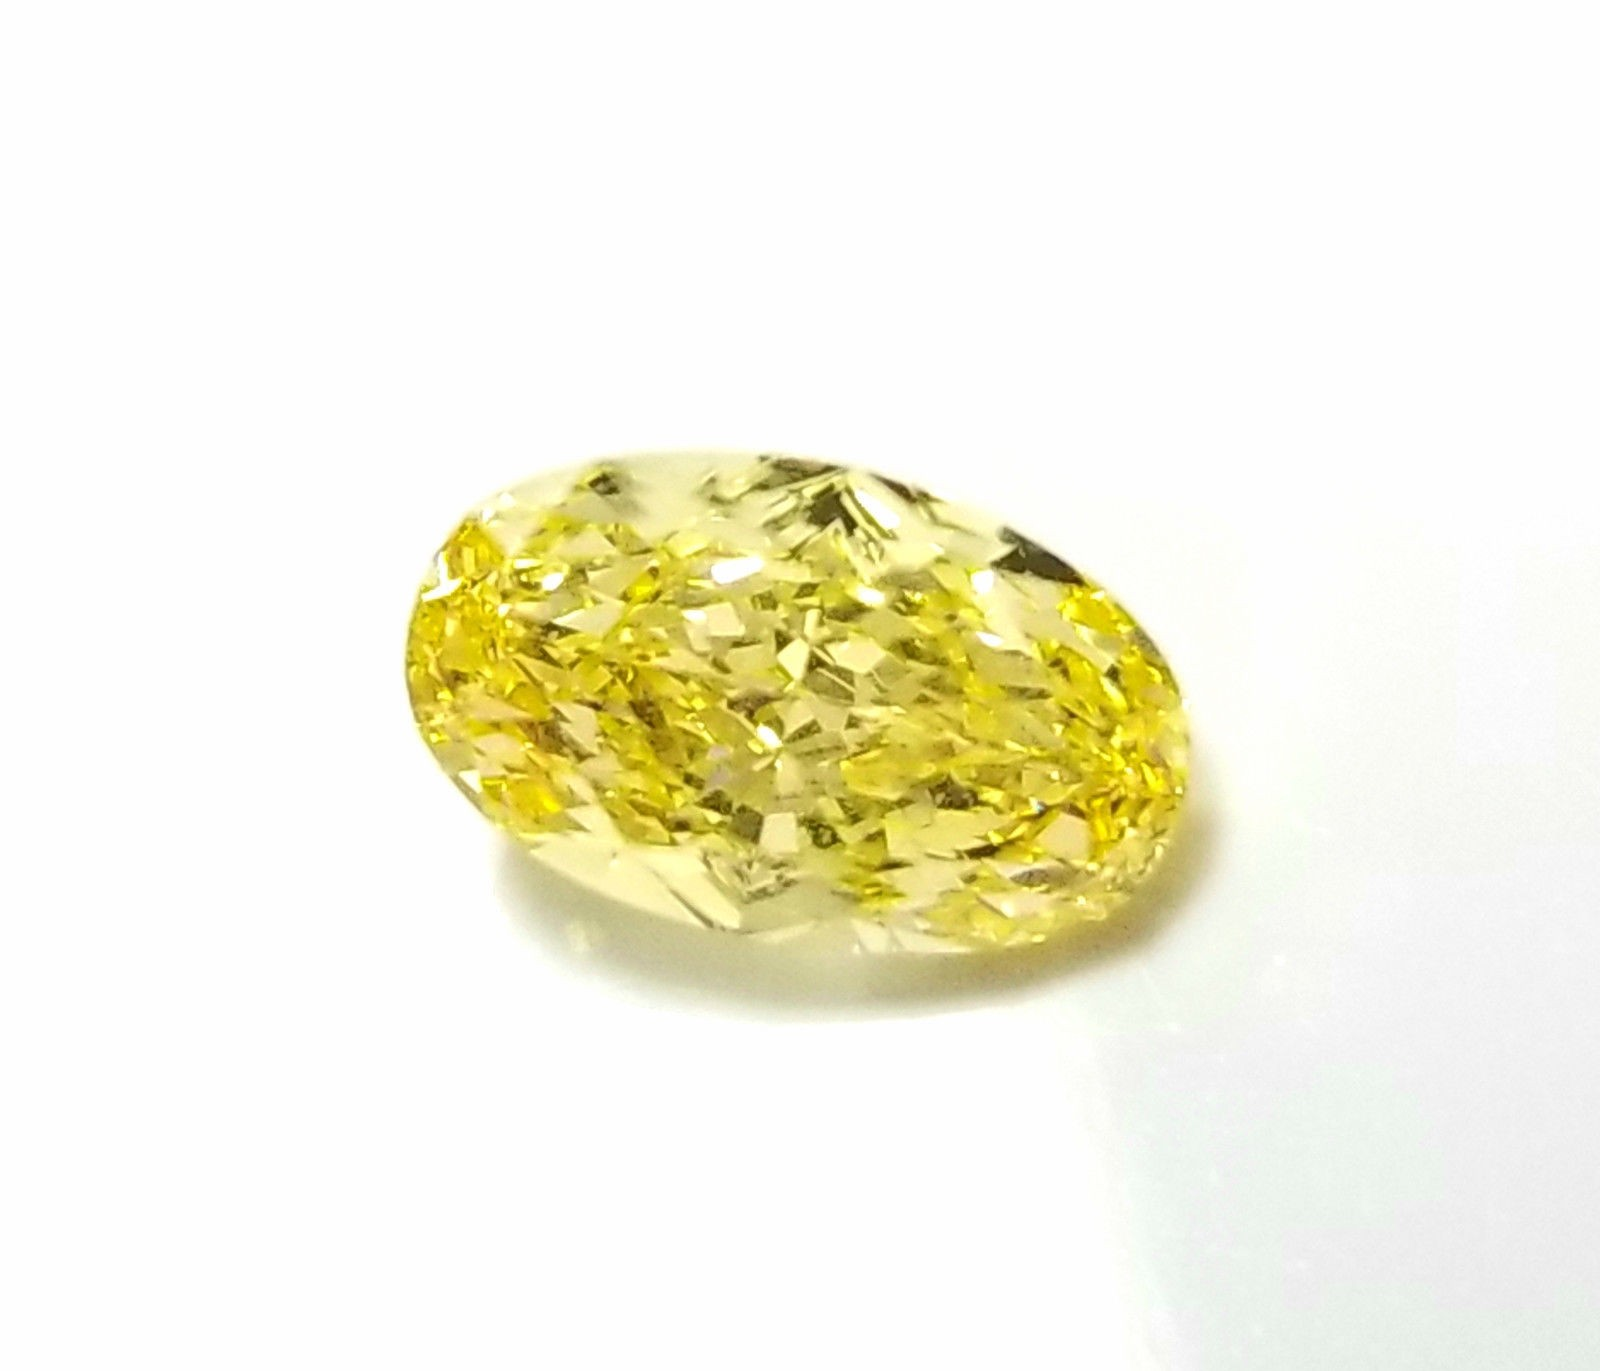 IF 1.09ct Yellow Diamond - Natural Loose Fancy Intense Yellow GIA Flawless Oval